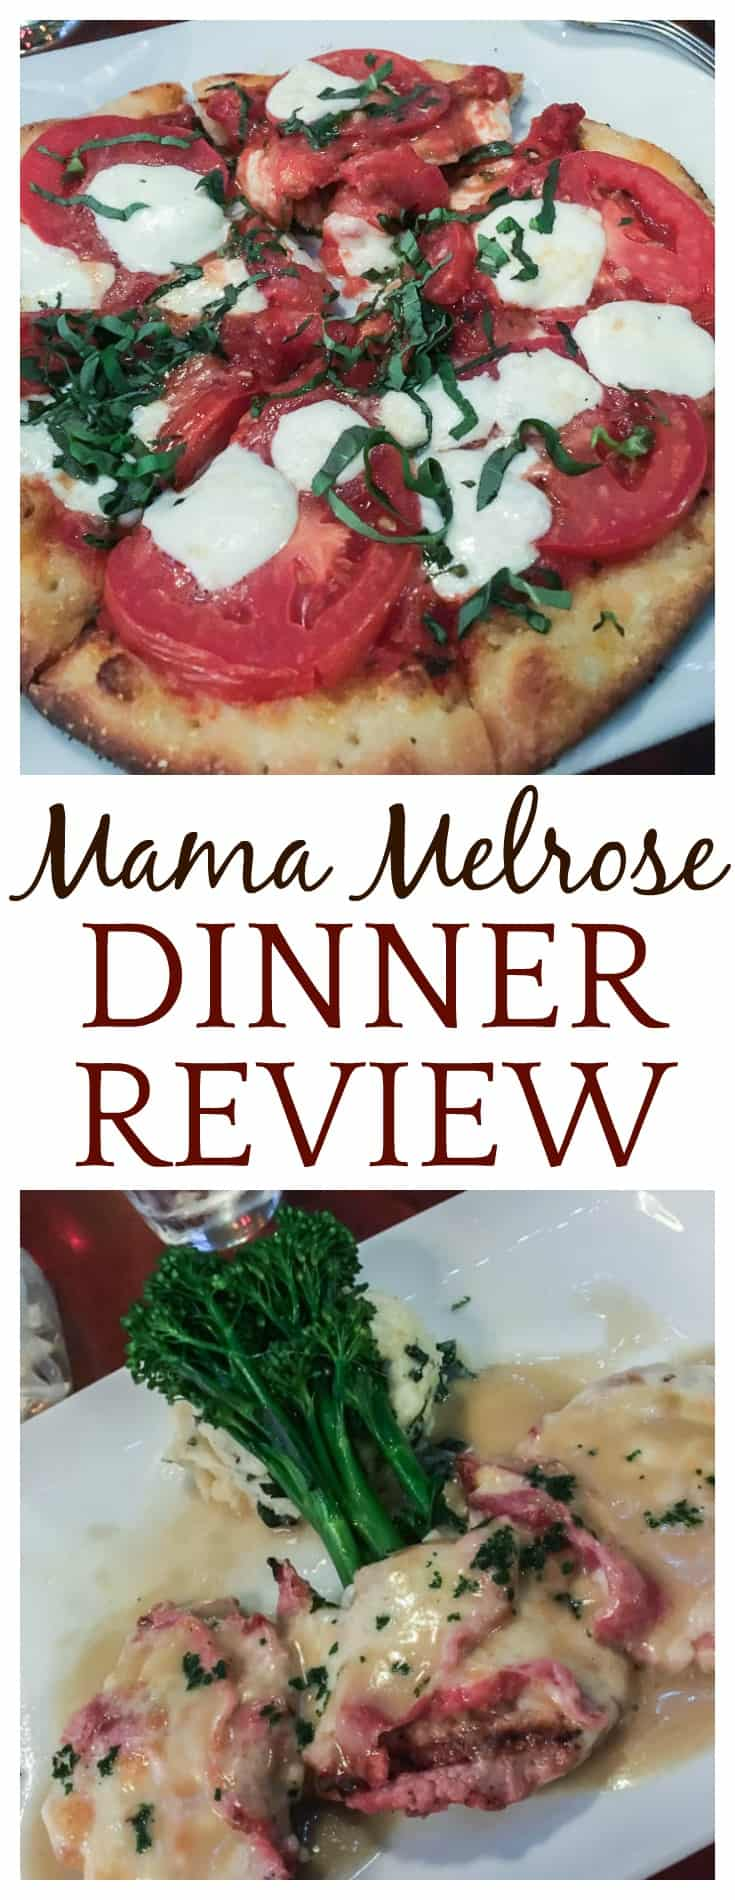 Mama melrose dinner review november 2017 delicious for Restaurants serving thanksgiving dinner near me 2017